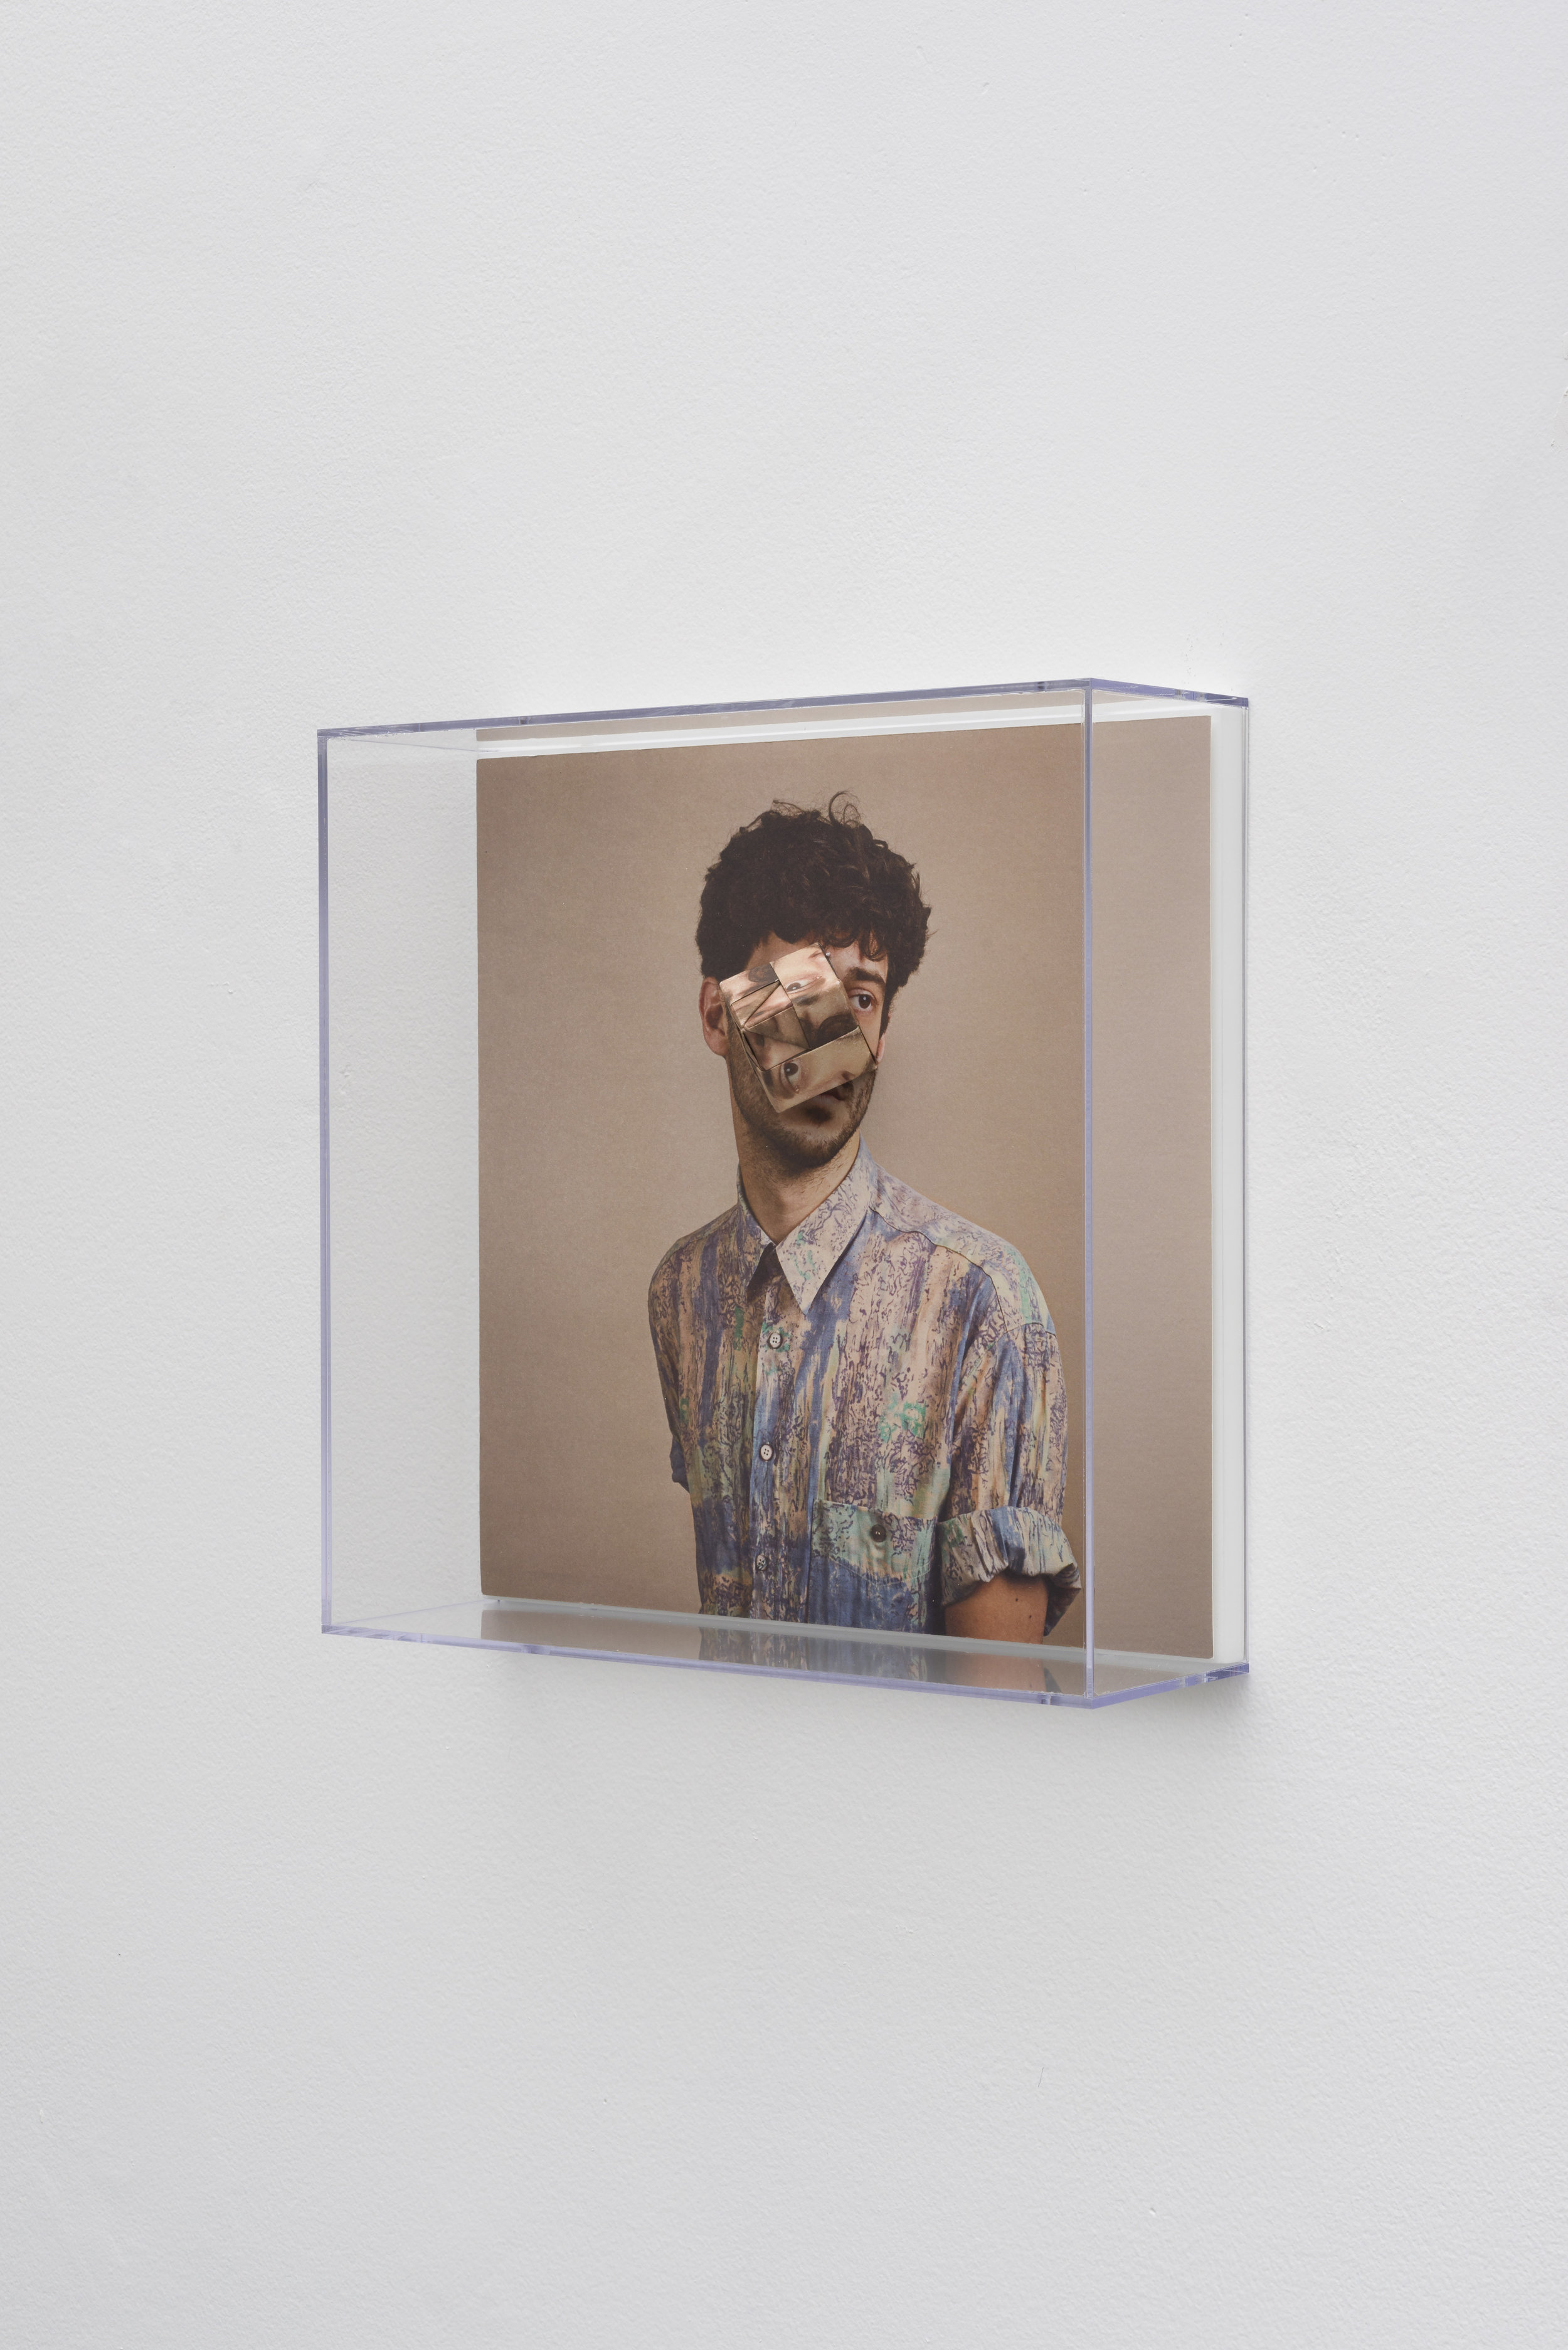 Alma Haser,  Patient No. 34 HD (Ben) , 2017  Digital pigment print with folded digital pigment print sculpture, plexiglass box, 30 x 30 x 10 cm (approx. 12 x 12 x 4 in), edition of 5   Inquire